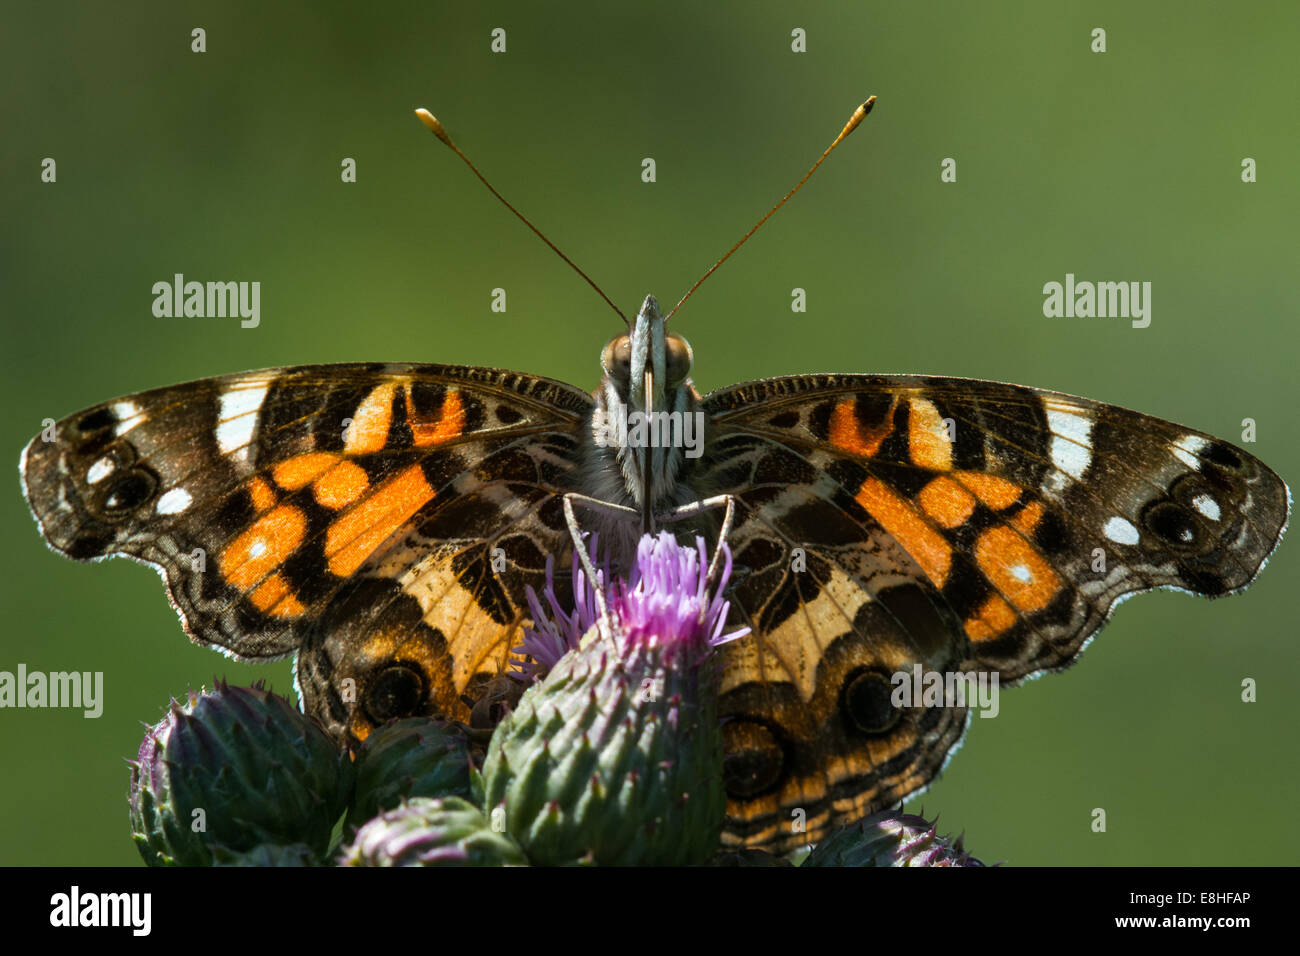 American Lady feeding on nectar. - Stock Image